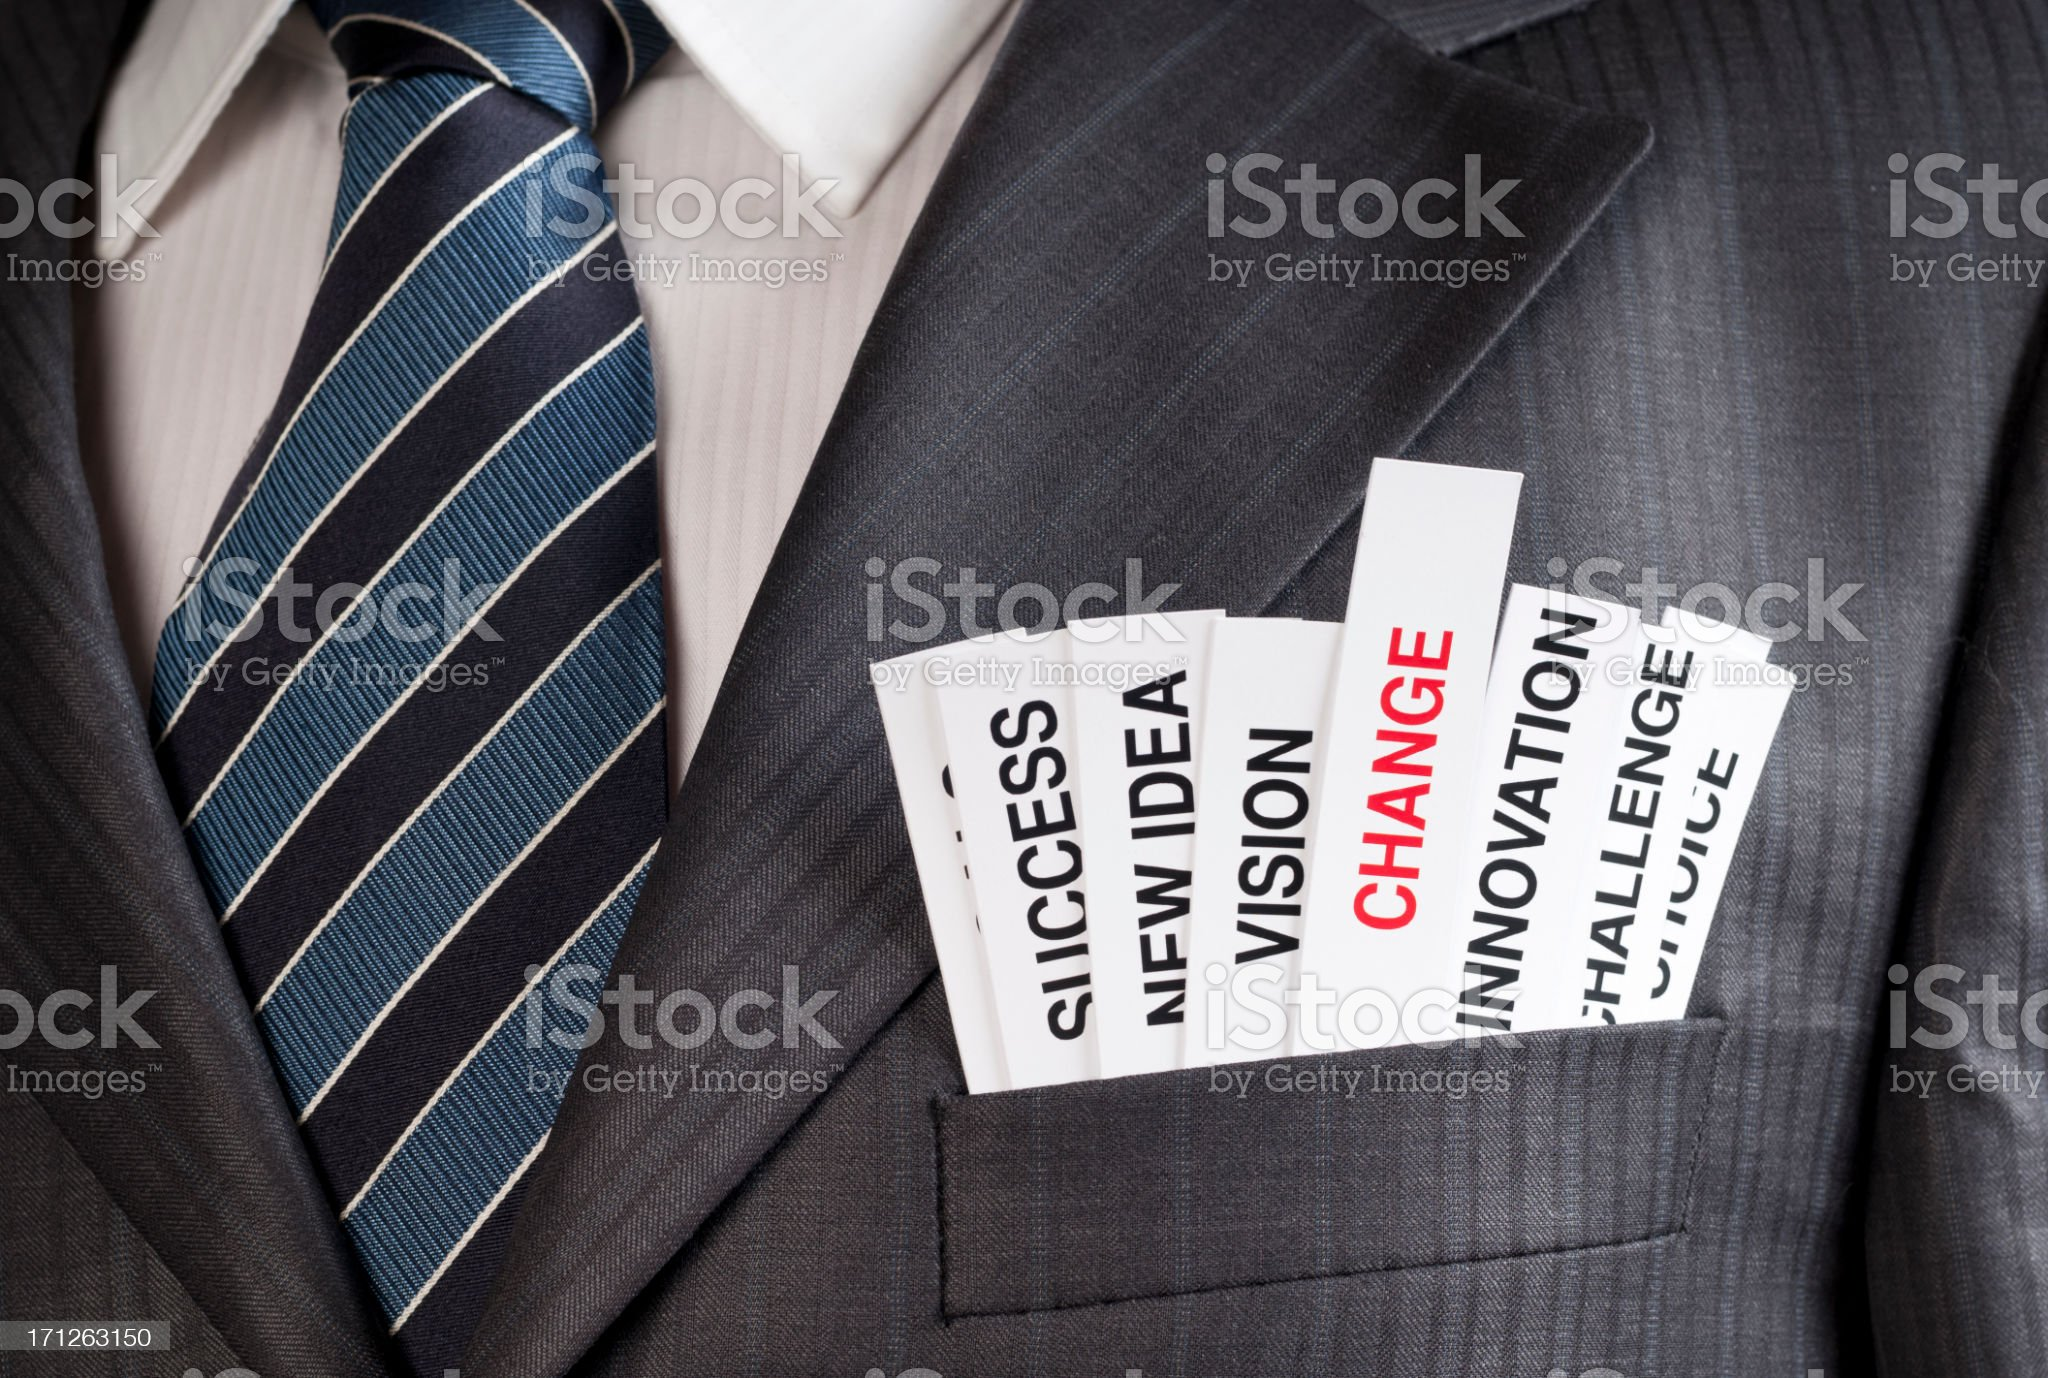 Buzzwords commonly used in a businessman's suit pocket  royalty-free stock photo